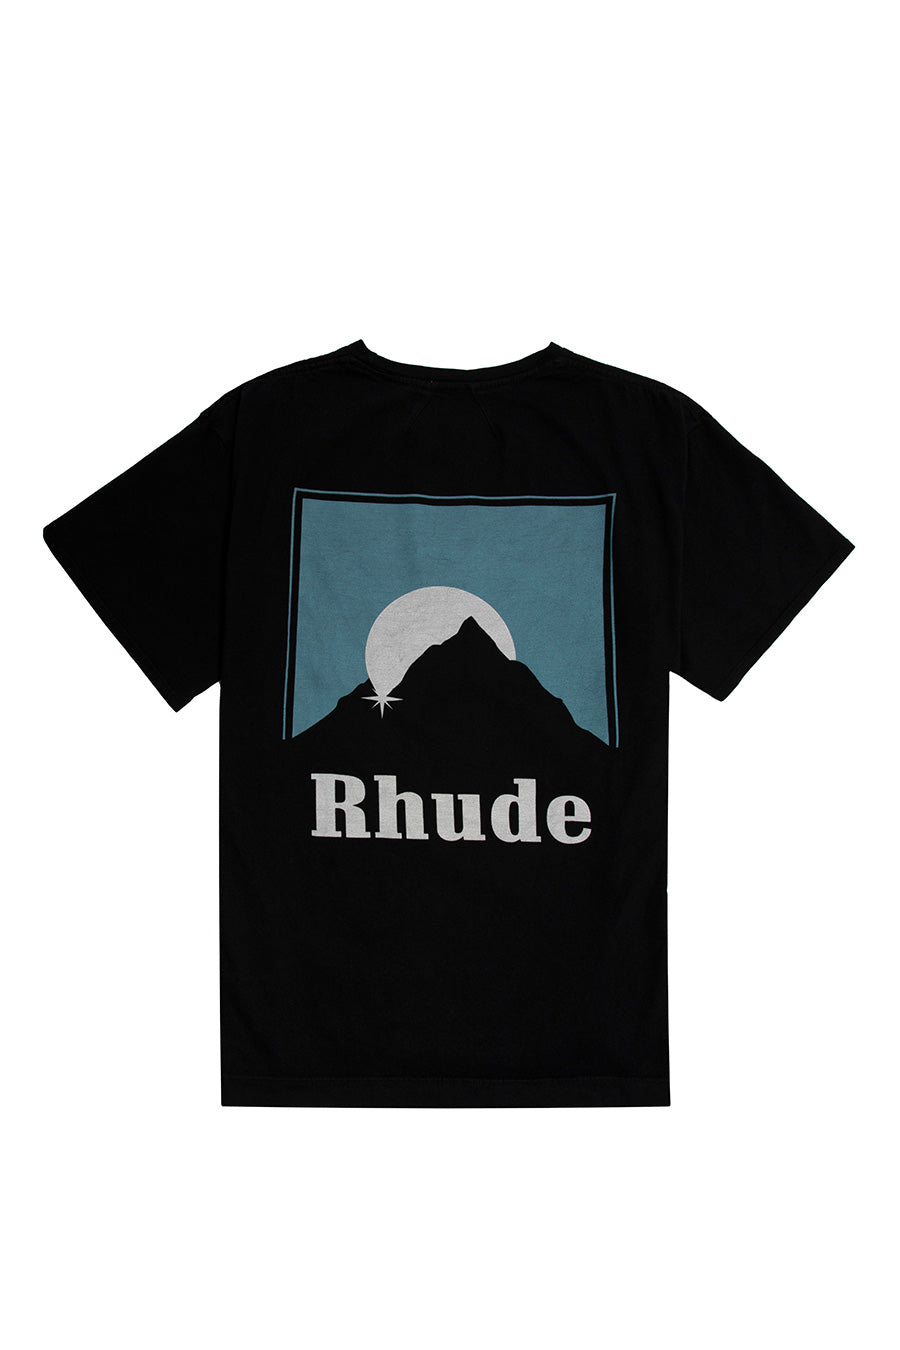 Rhude - Black Sundry T-Shirt | 1032 SPACE